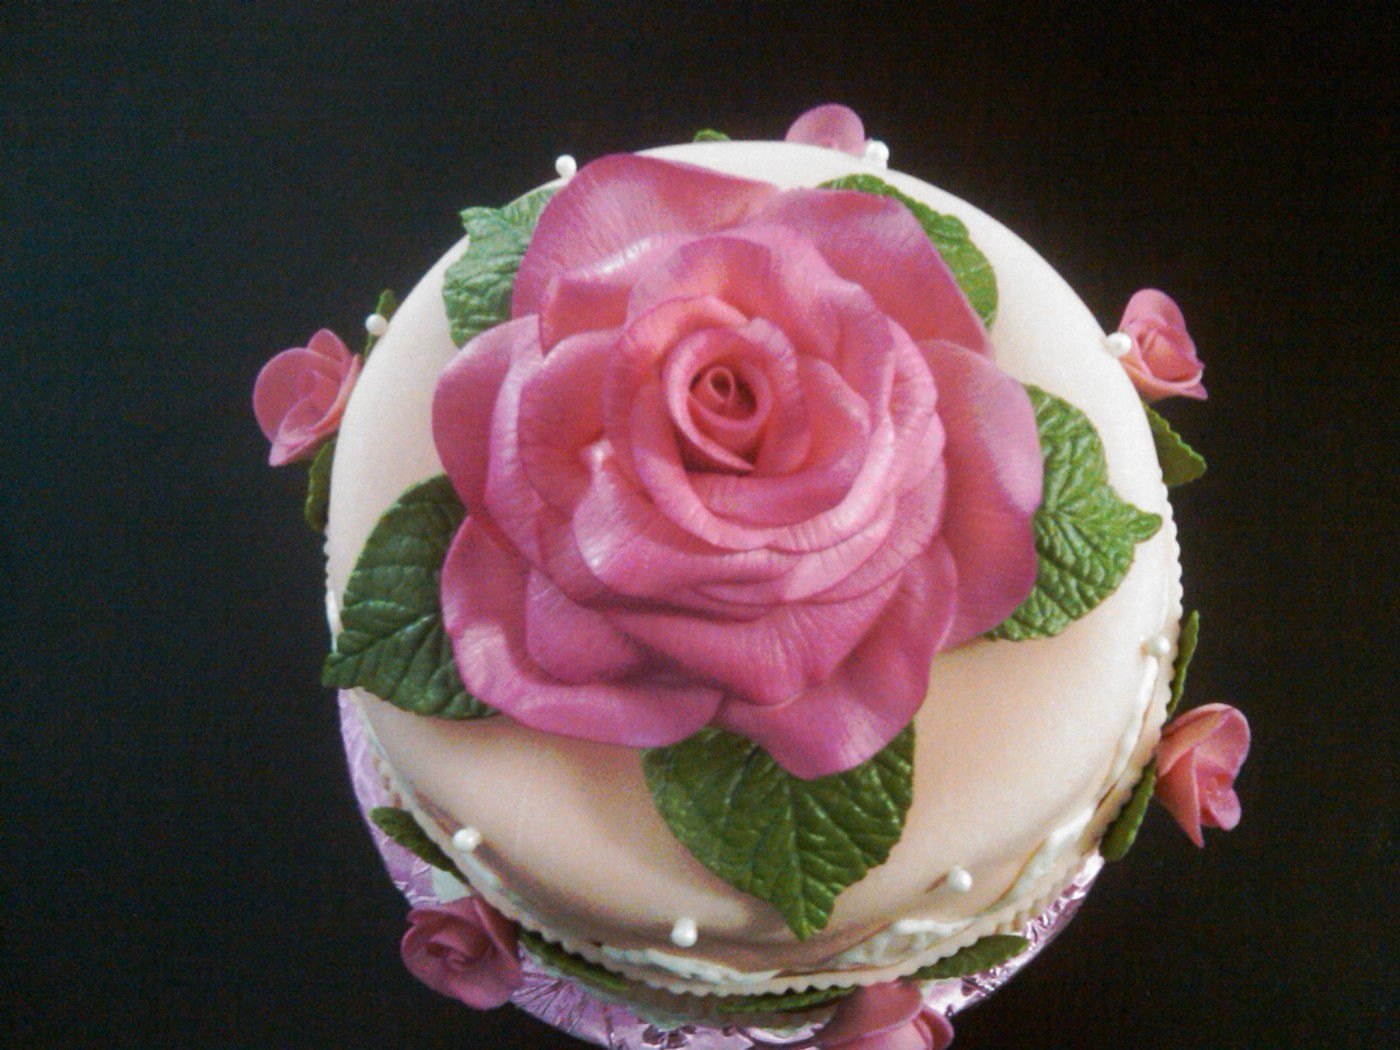 Best ideas about Roses Birthday Cake . Save or Pin Rose Birthday Cake Cake Decorating munity Cakes We Bake Now.